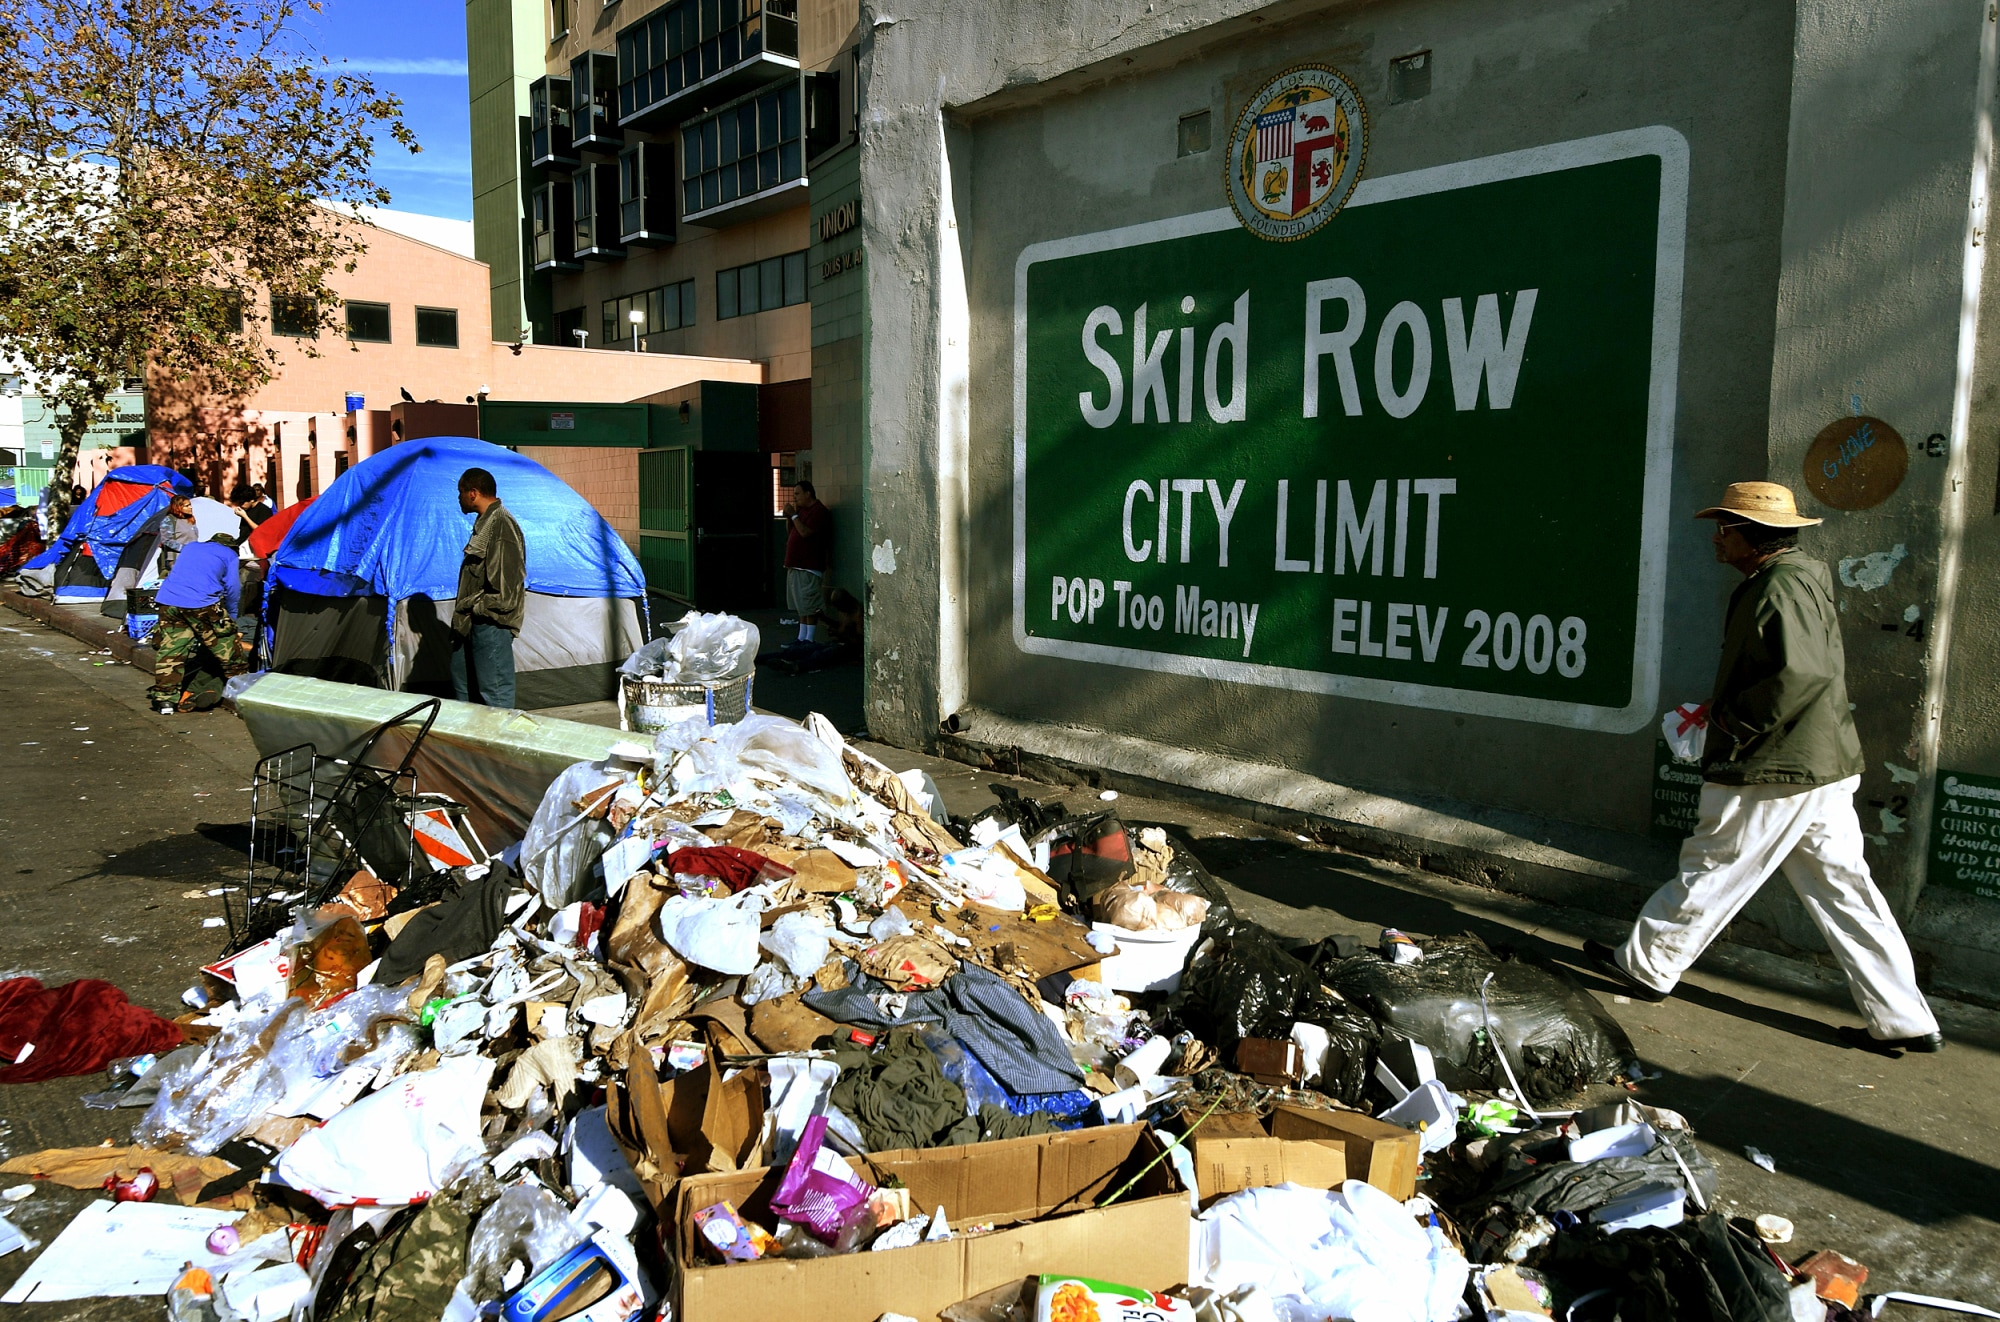 Rats and trash infest LA's skid row, fueling Typhus